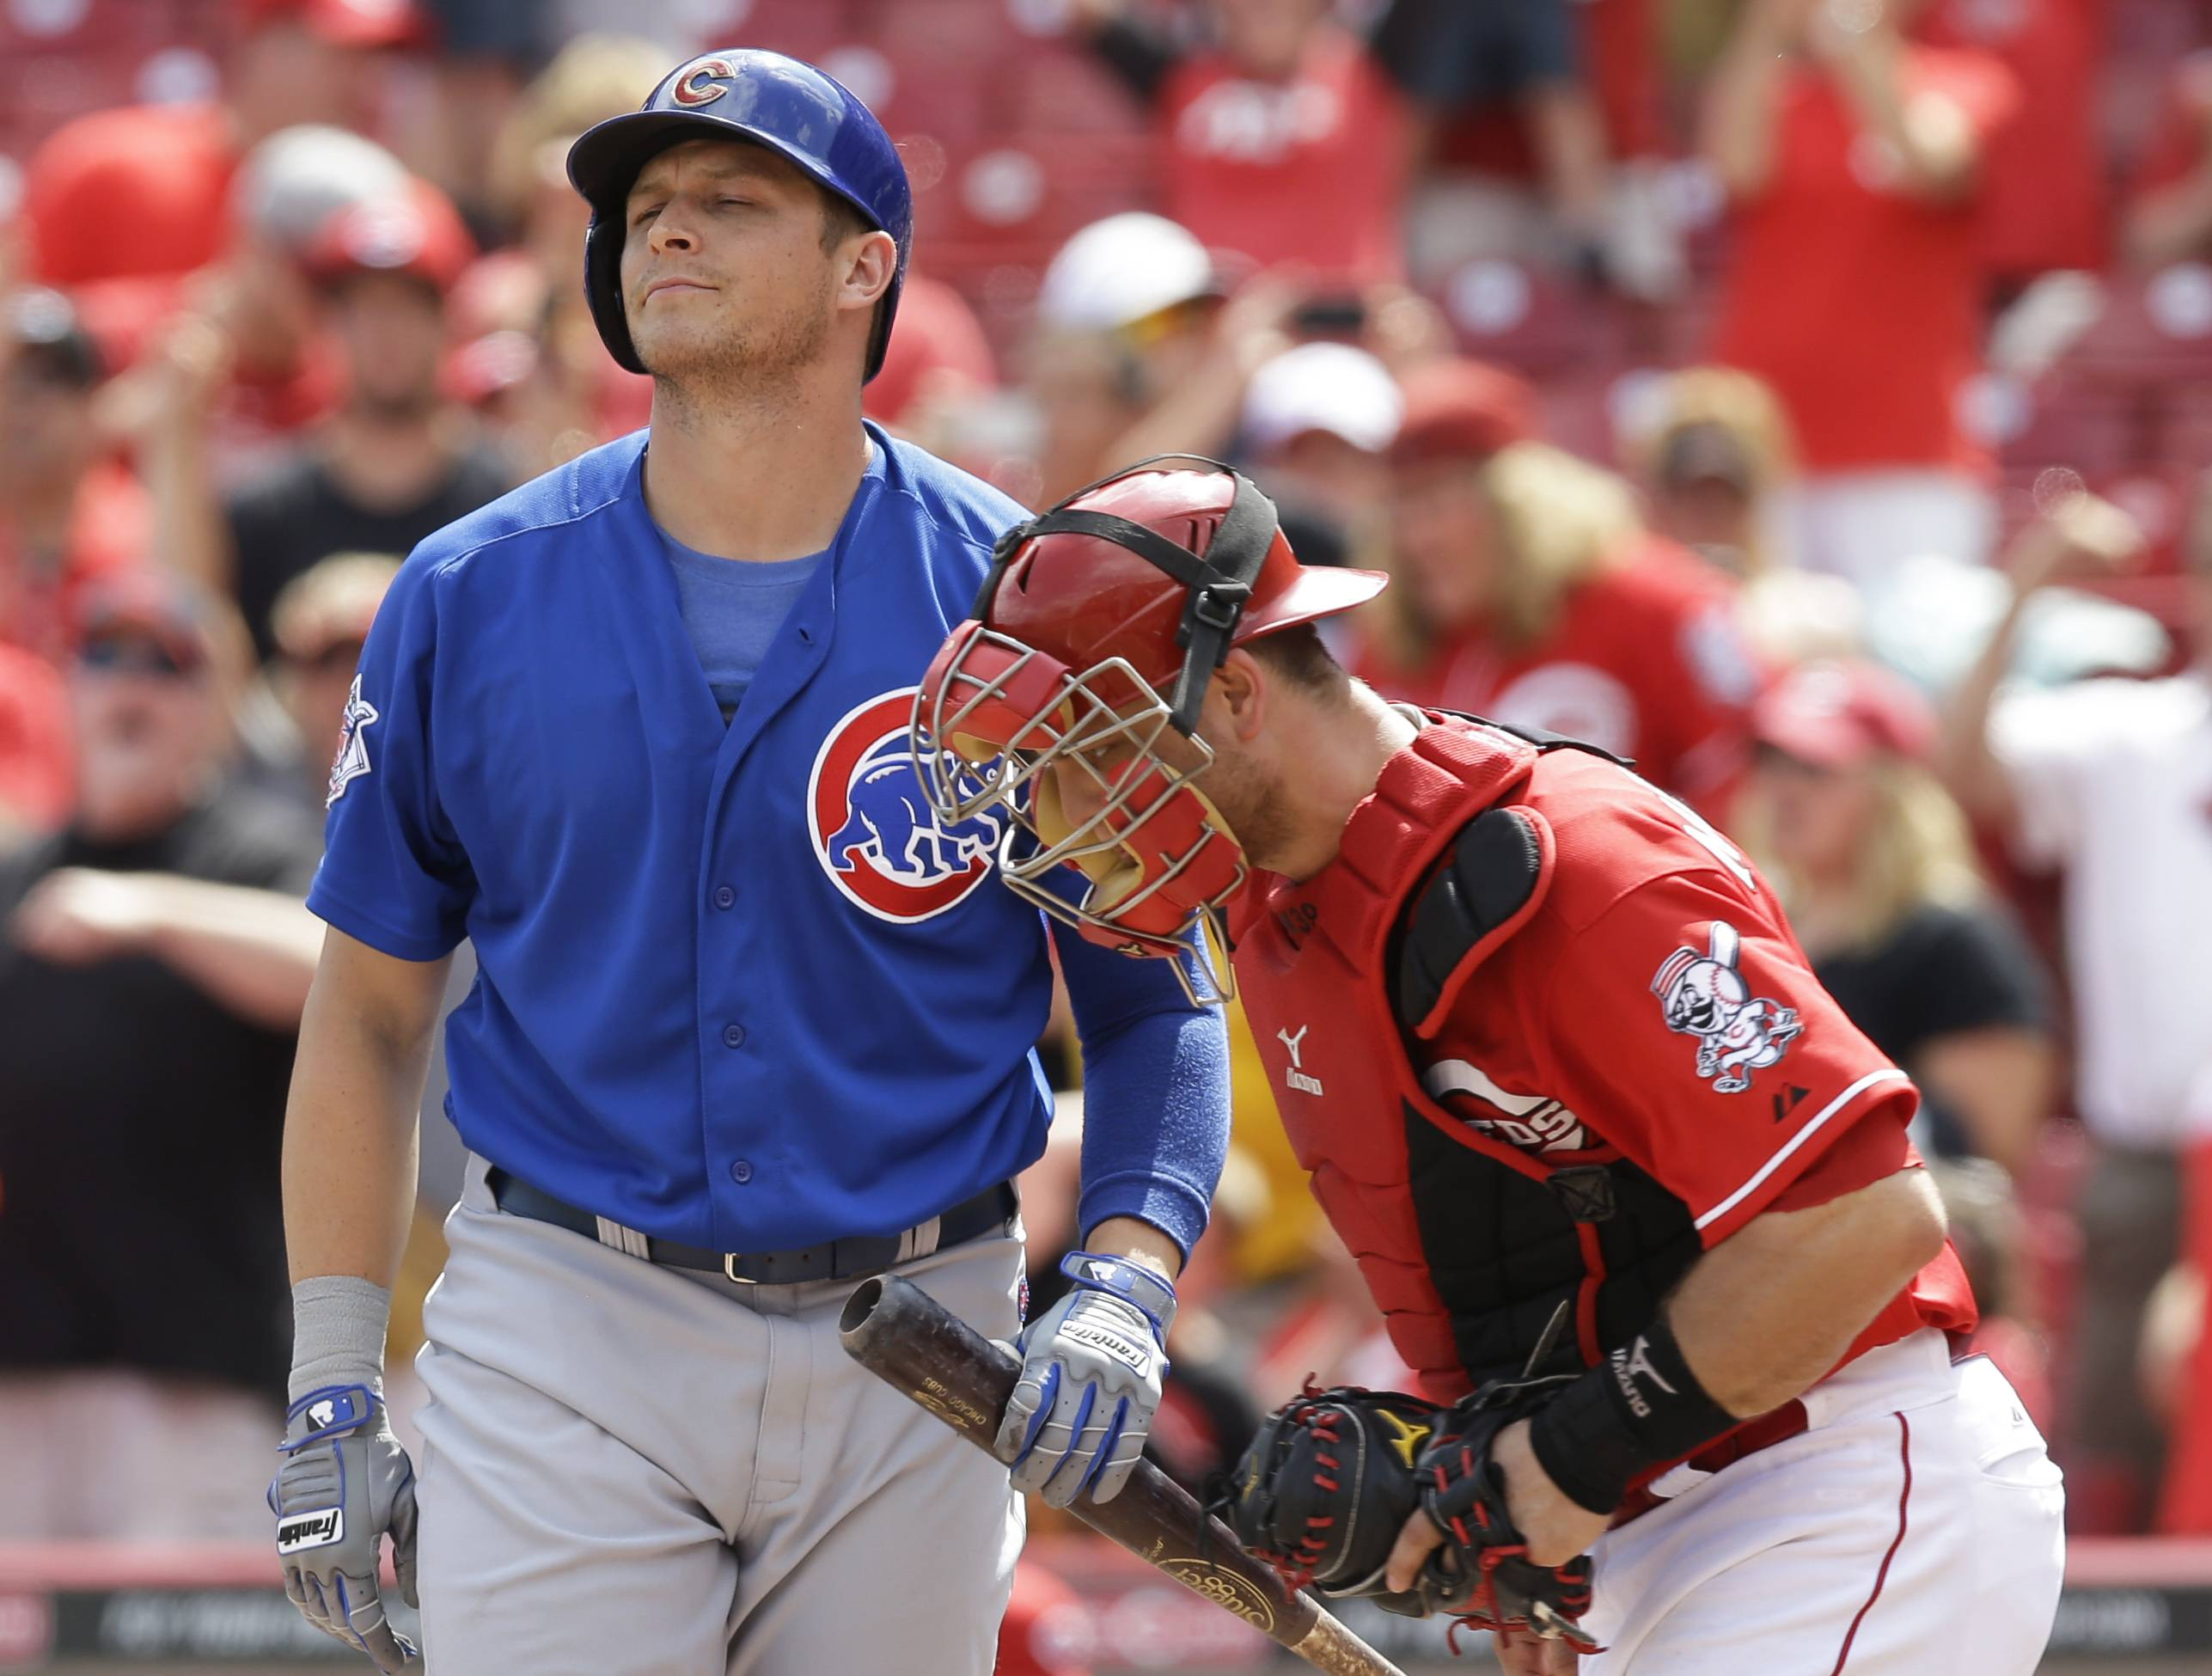 Cubs swept by Reds in doubleheader